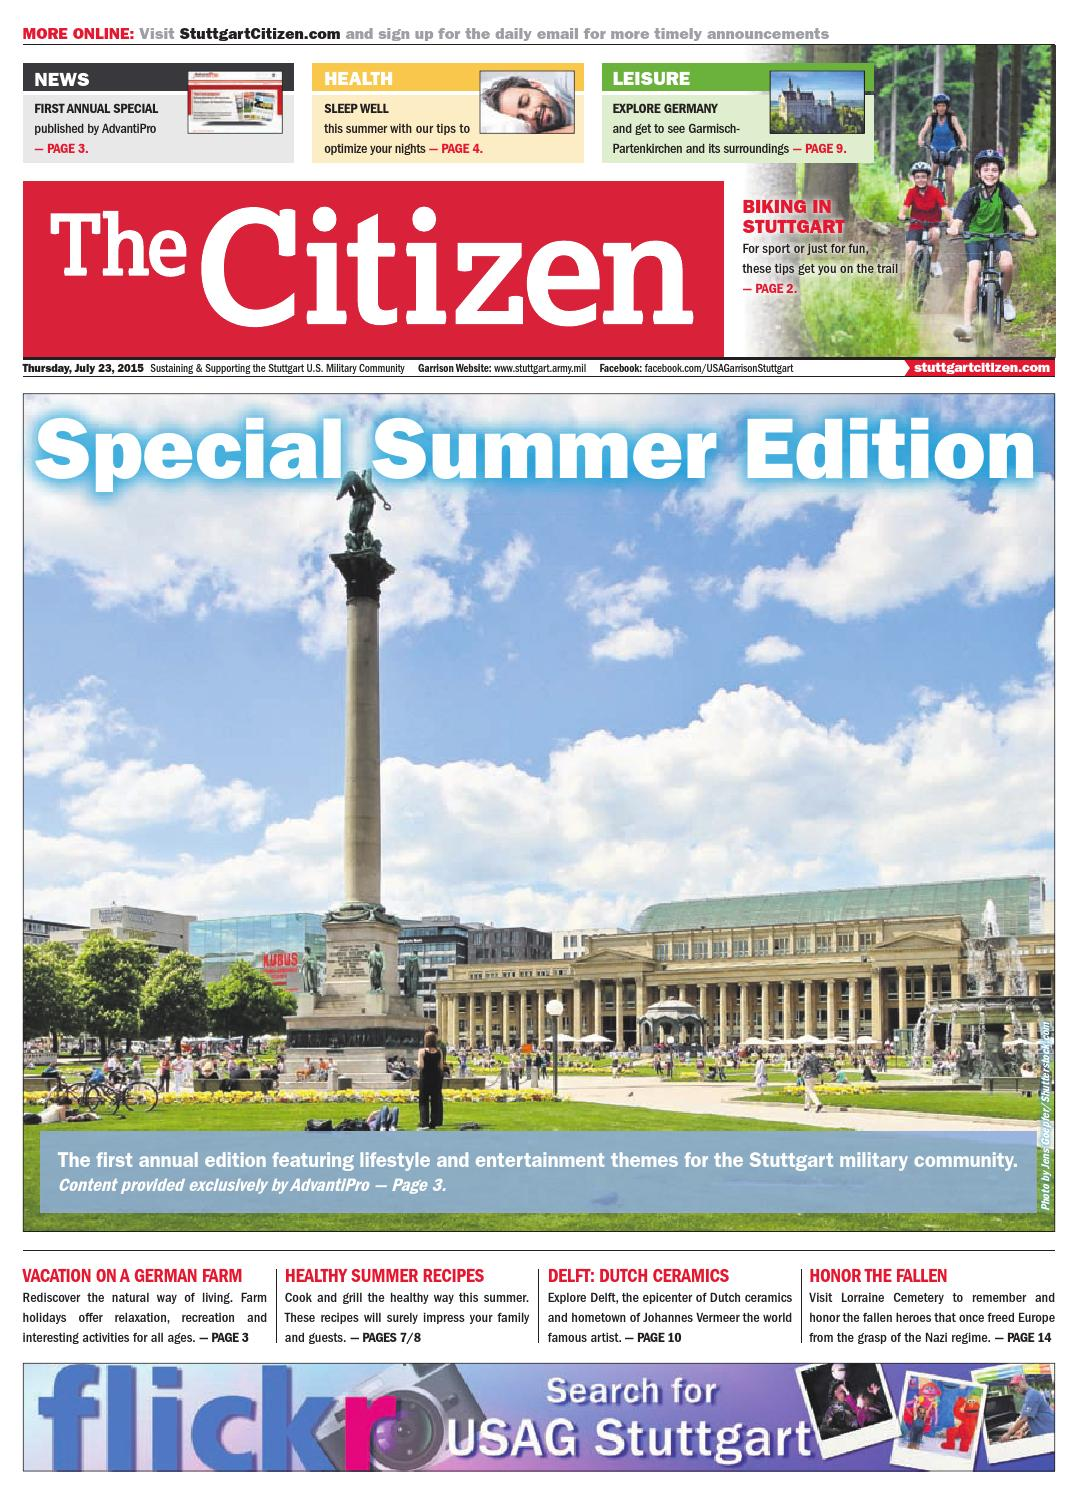 ab9661dae12ee The Citizen, July 23, 2015 by AdvantiPro GmbH - issuu